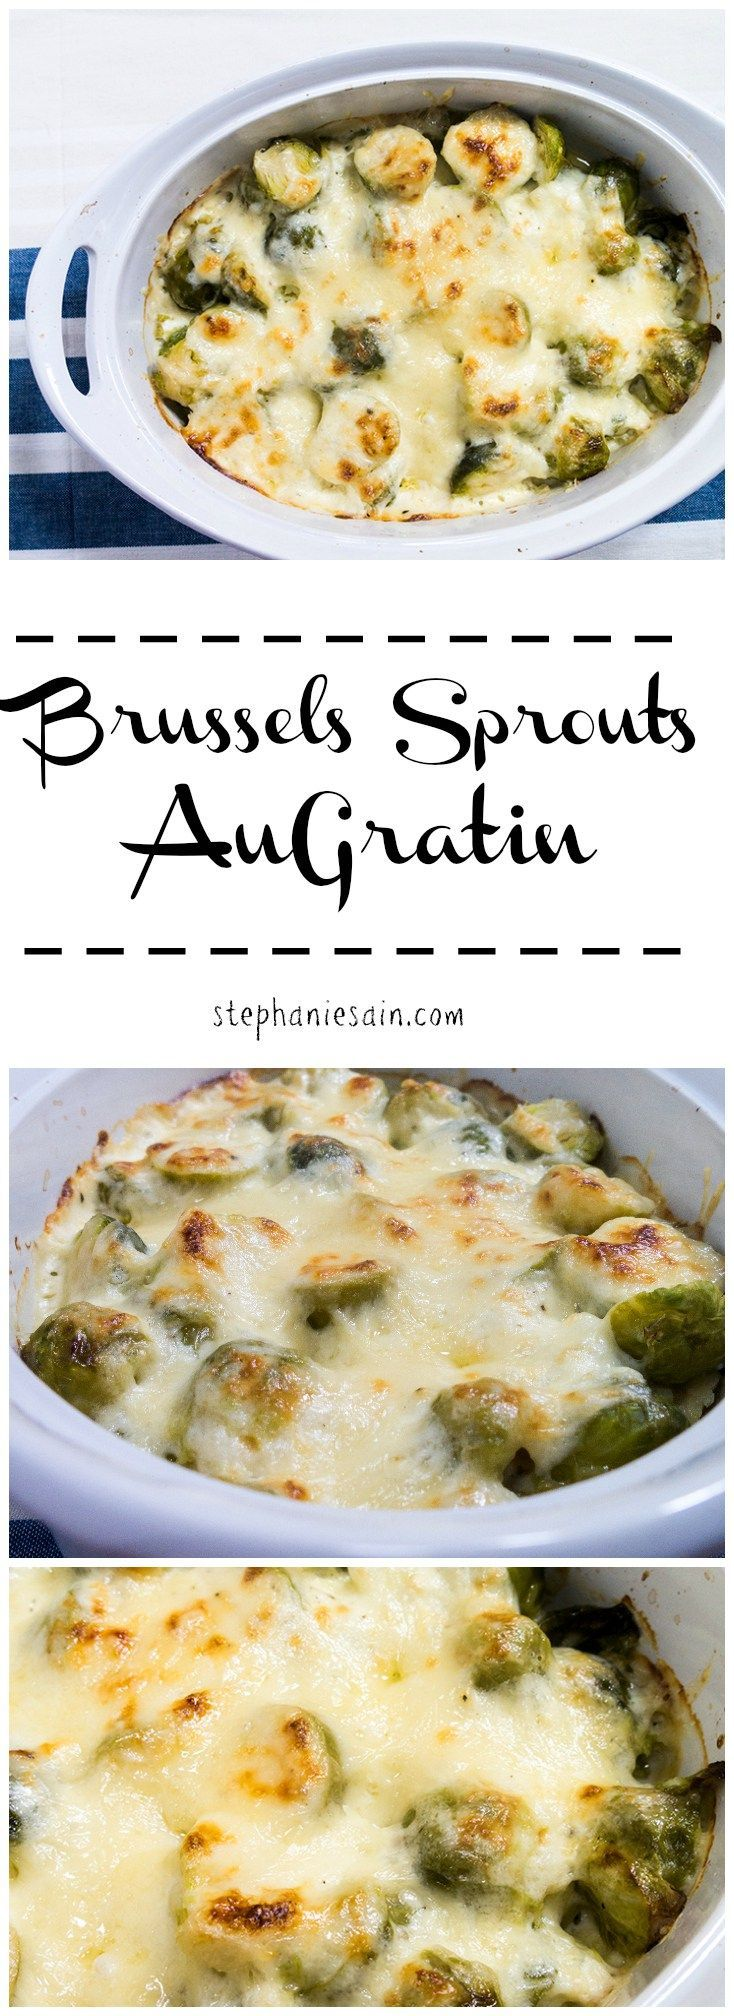 Brussels Sprouts Au Gratin is a creamy tasty side dish. It requires only a few ingredients for a delicious tasting side for the holidays or anytime. Vegetarian & Gluten Free.